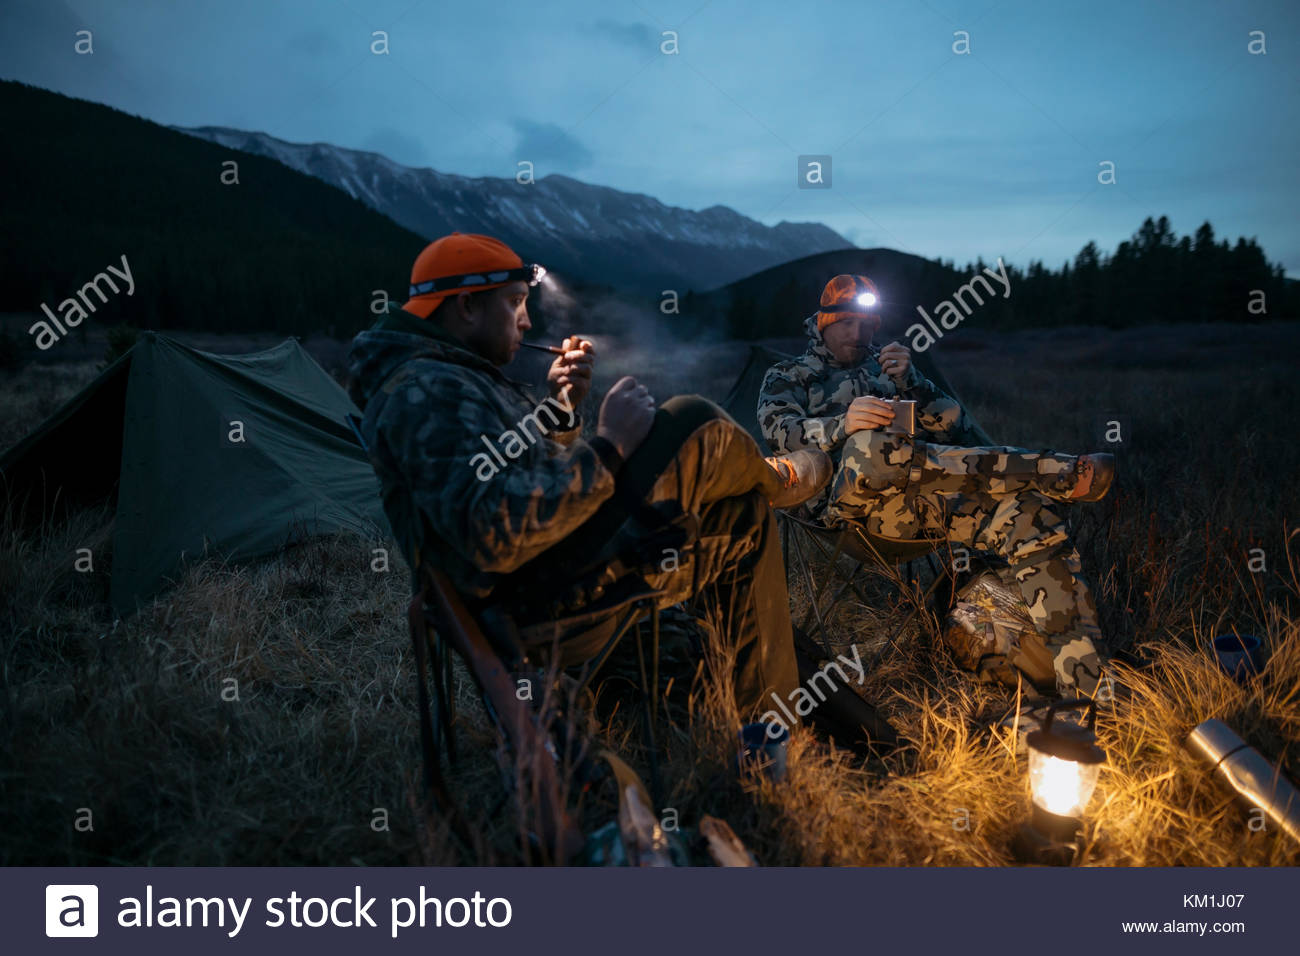 Male hunter friends in headlamps smoking pipes at campsite in remote field below mountains at night - Stock Image